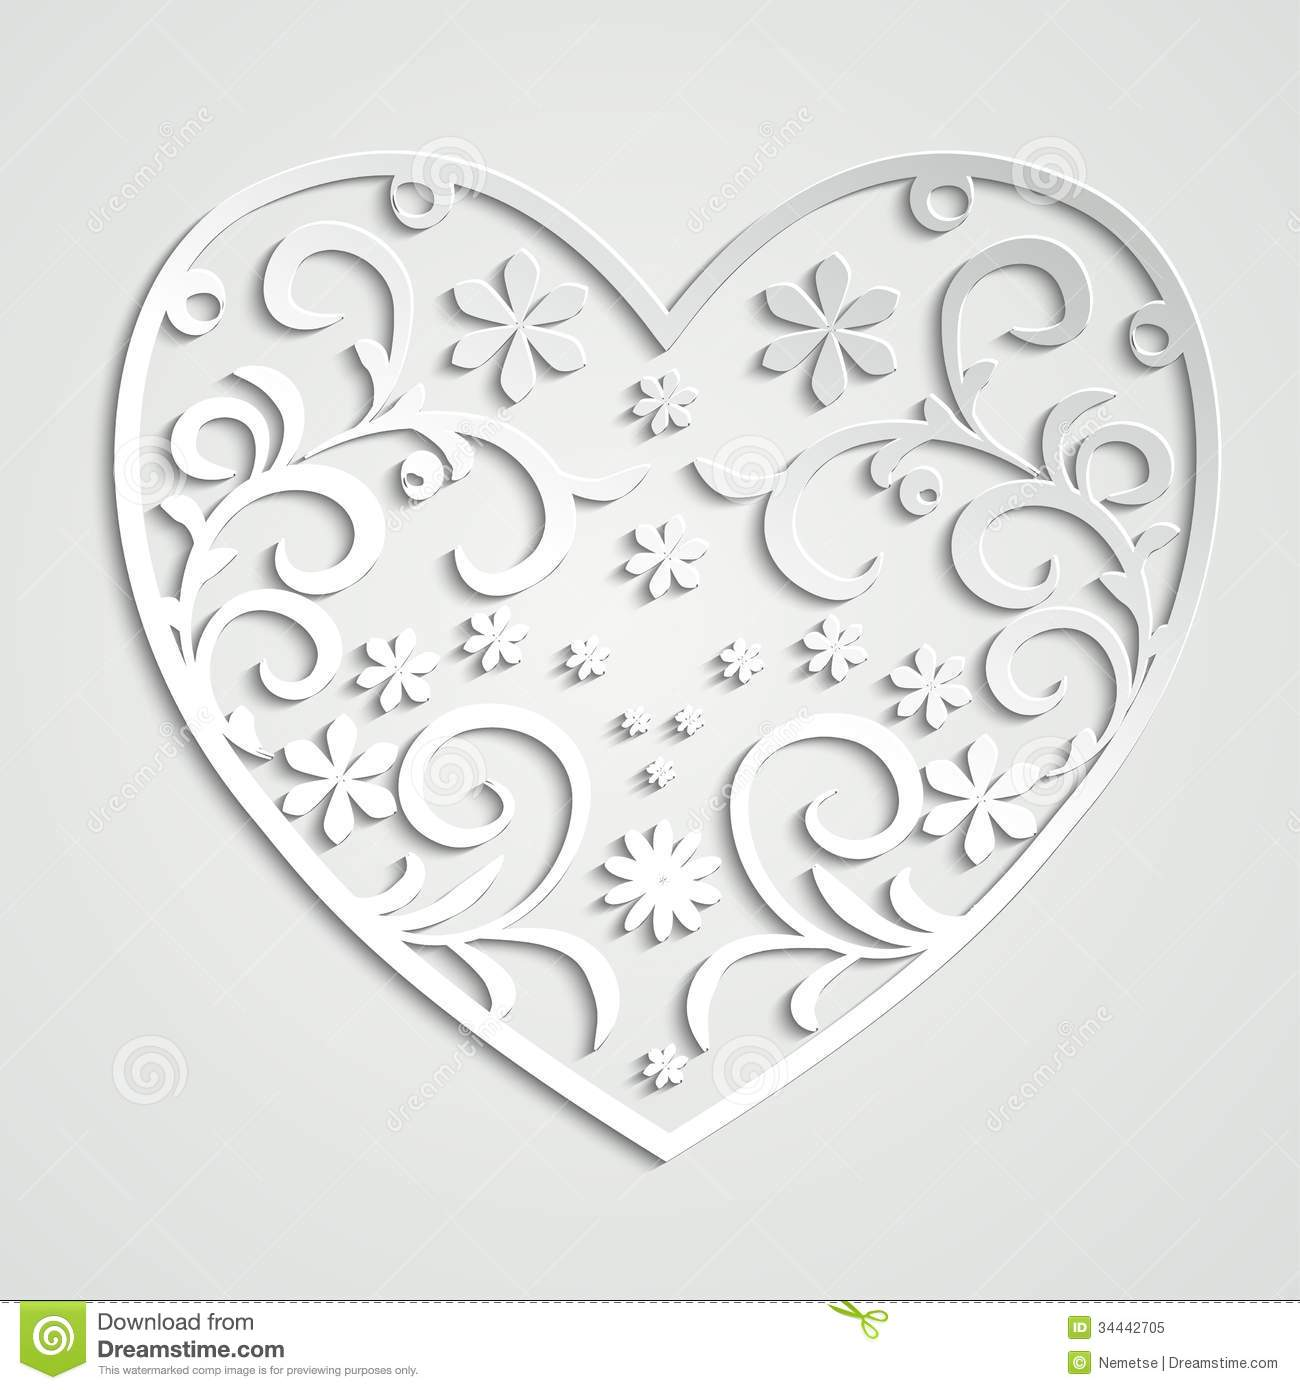 Paper Heart Royalty Free Stock Photo Image 34442705